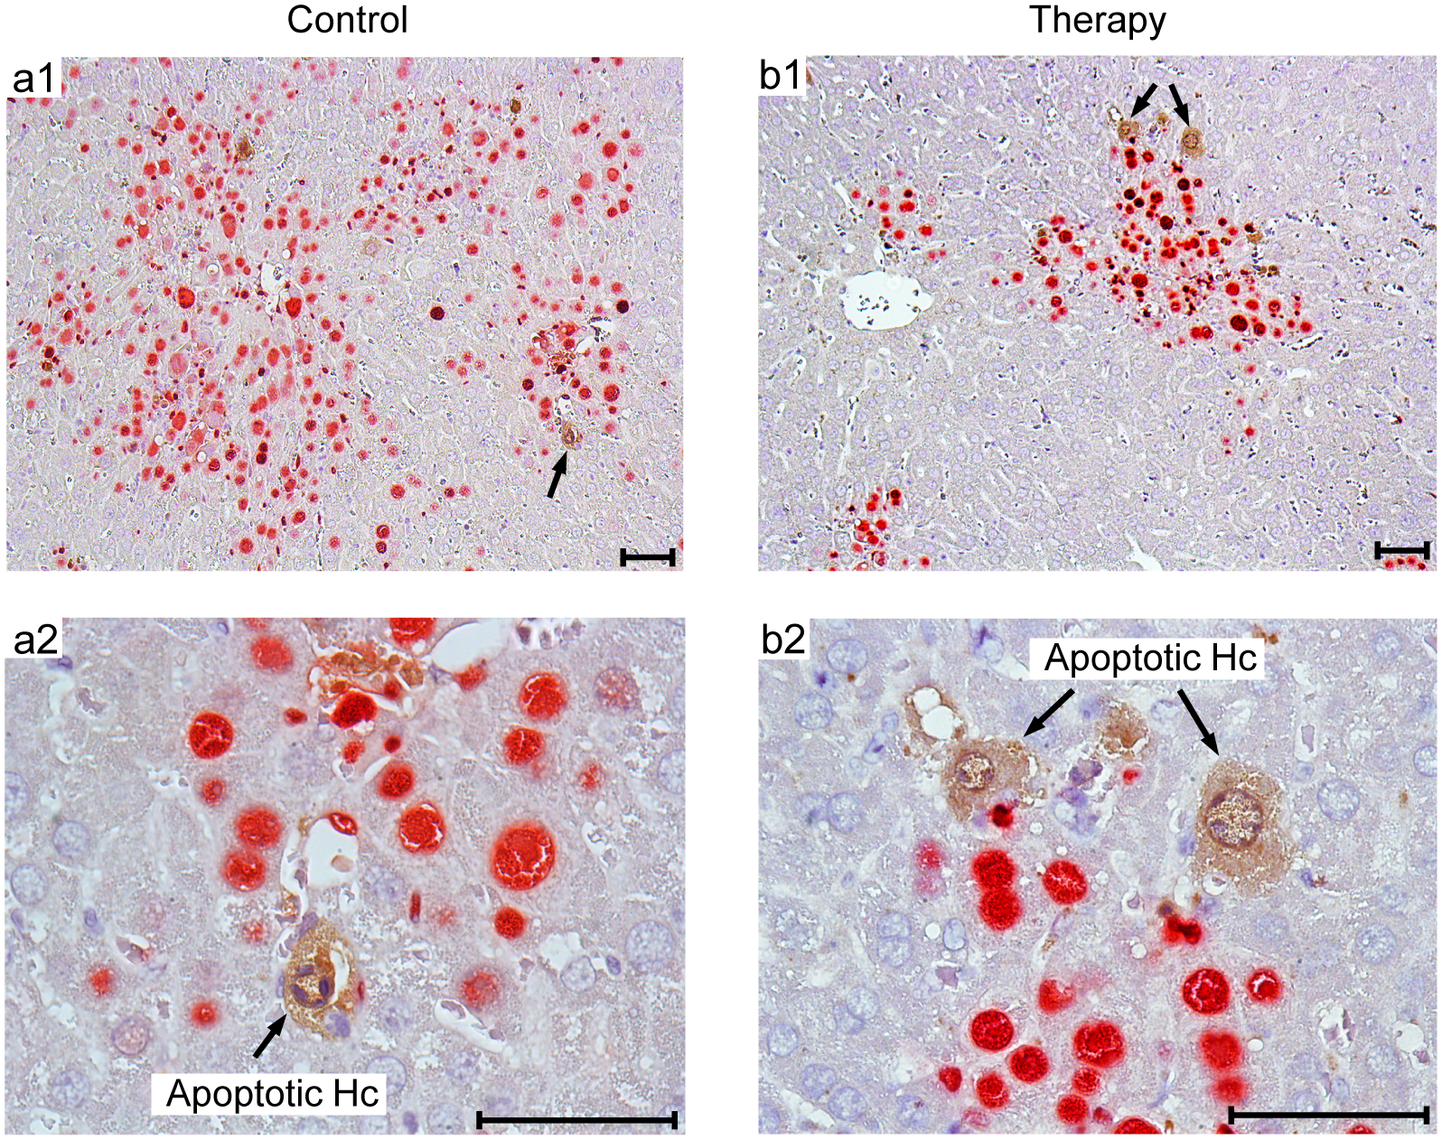 Human NLV-specific T cells do not exert an immunopathology in terms of enhanced apoptosis or necrotic/necroptotic lesions outside of foci of infection.